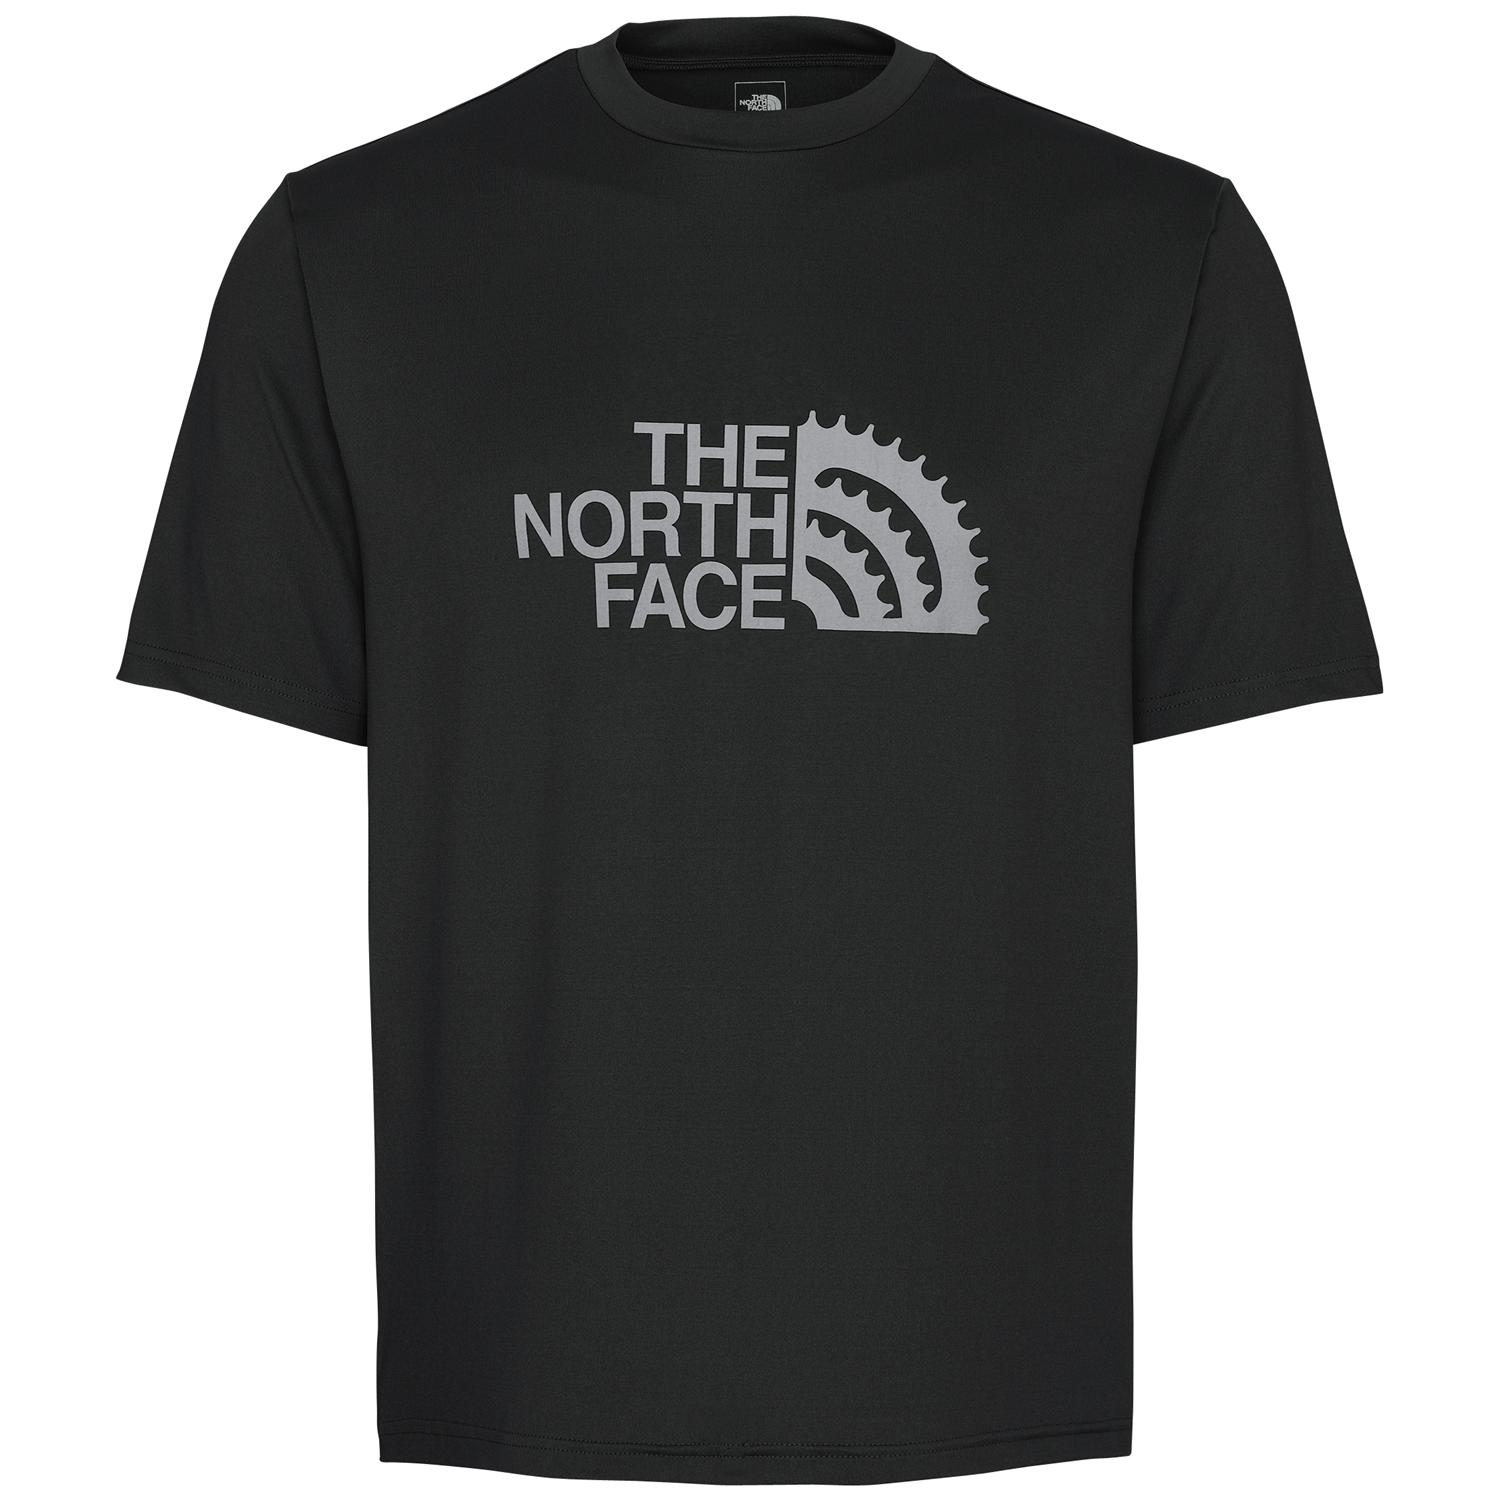 The North Face Chain Ring T Shirt Evo Outlet